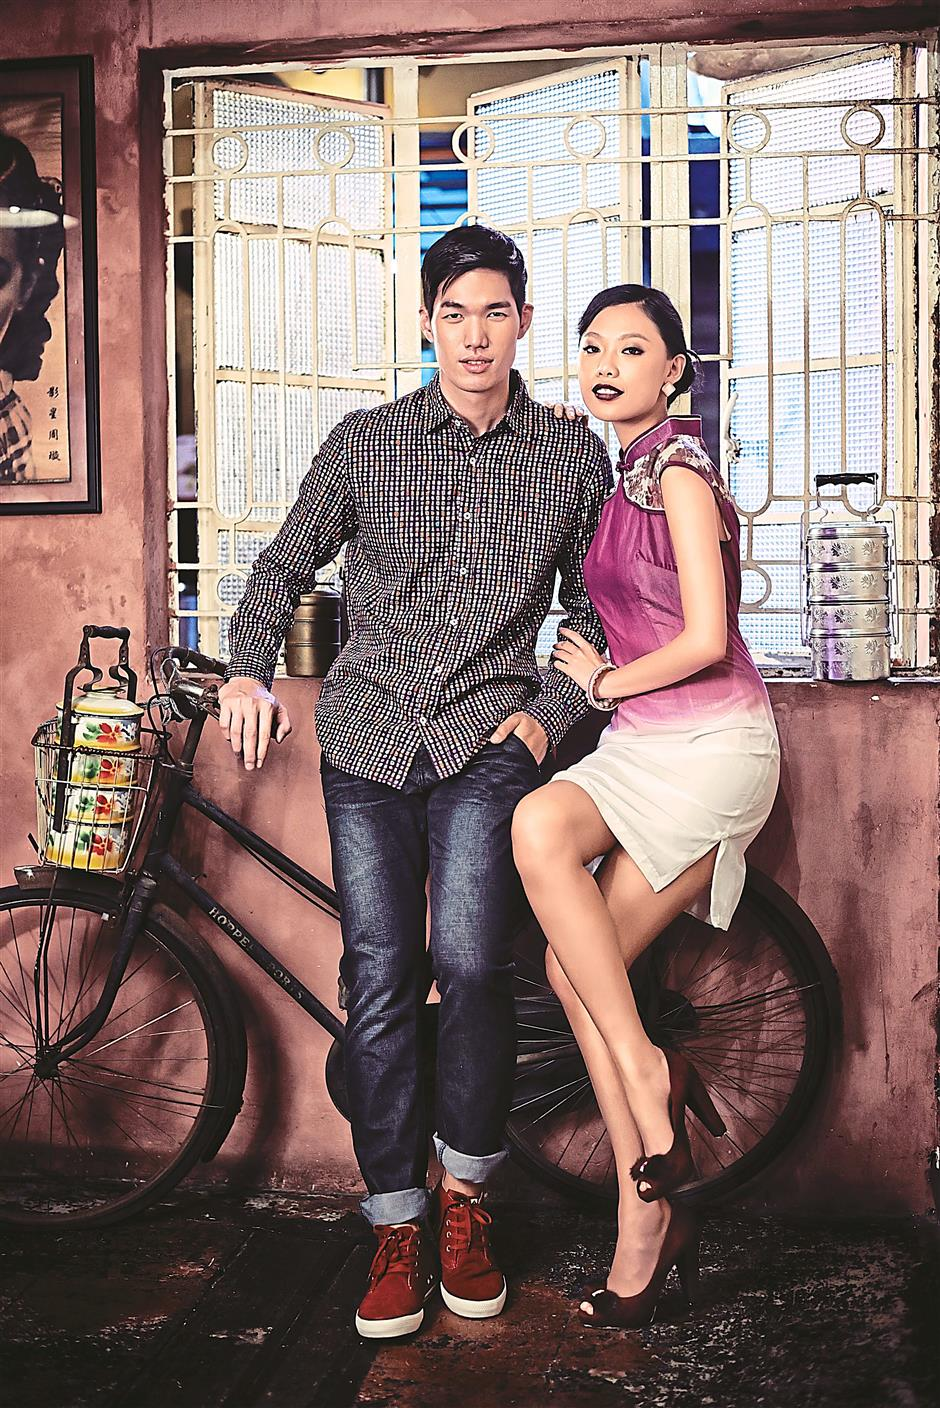 He uses a Desigual shirt and Biem jeans while she uses an Ang Eng Cheong Same, Rebecca Sanver shoes and earrings and a bracelet from Parco Diviale.